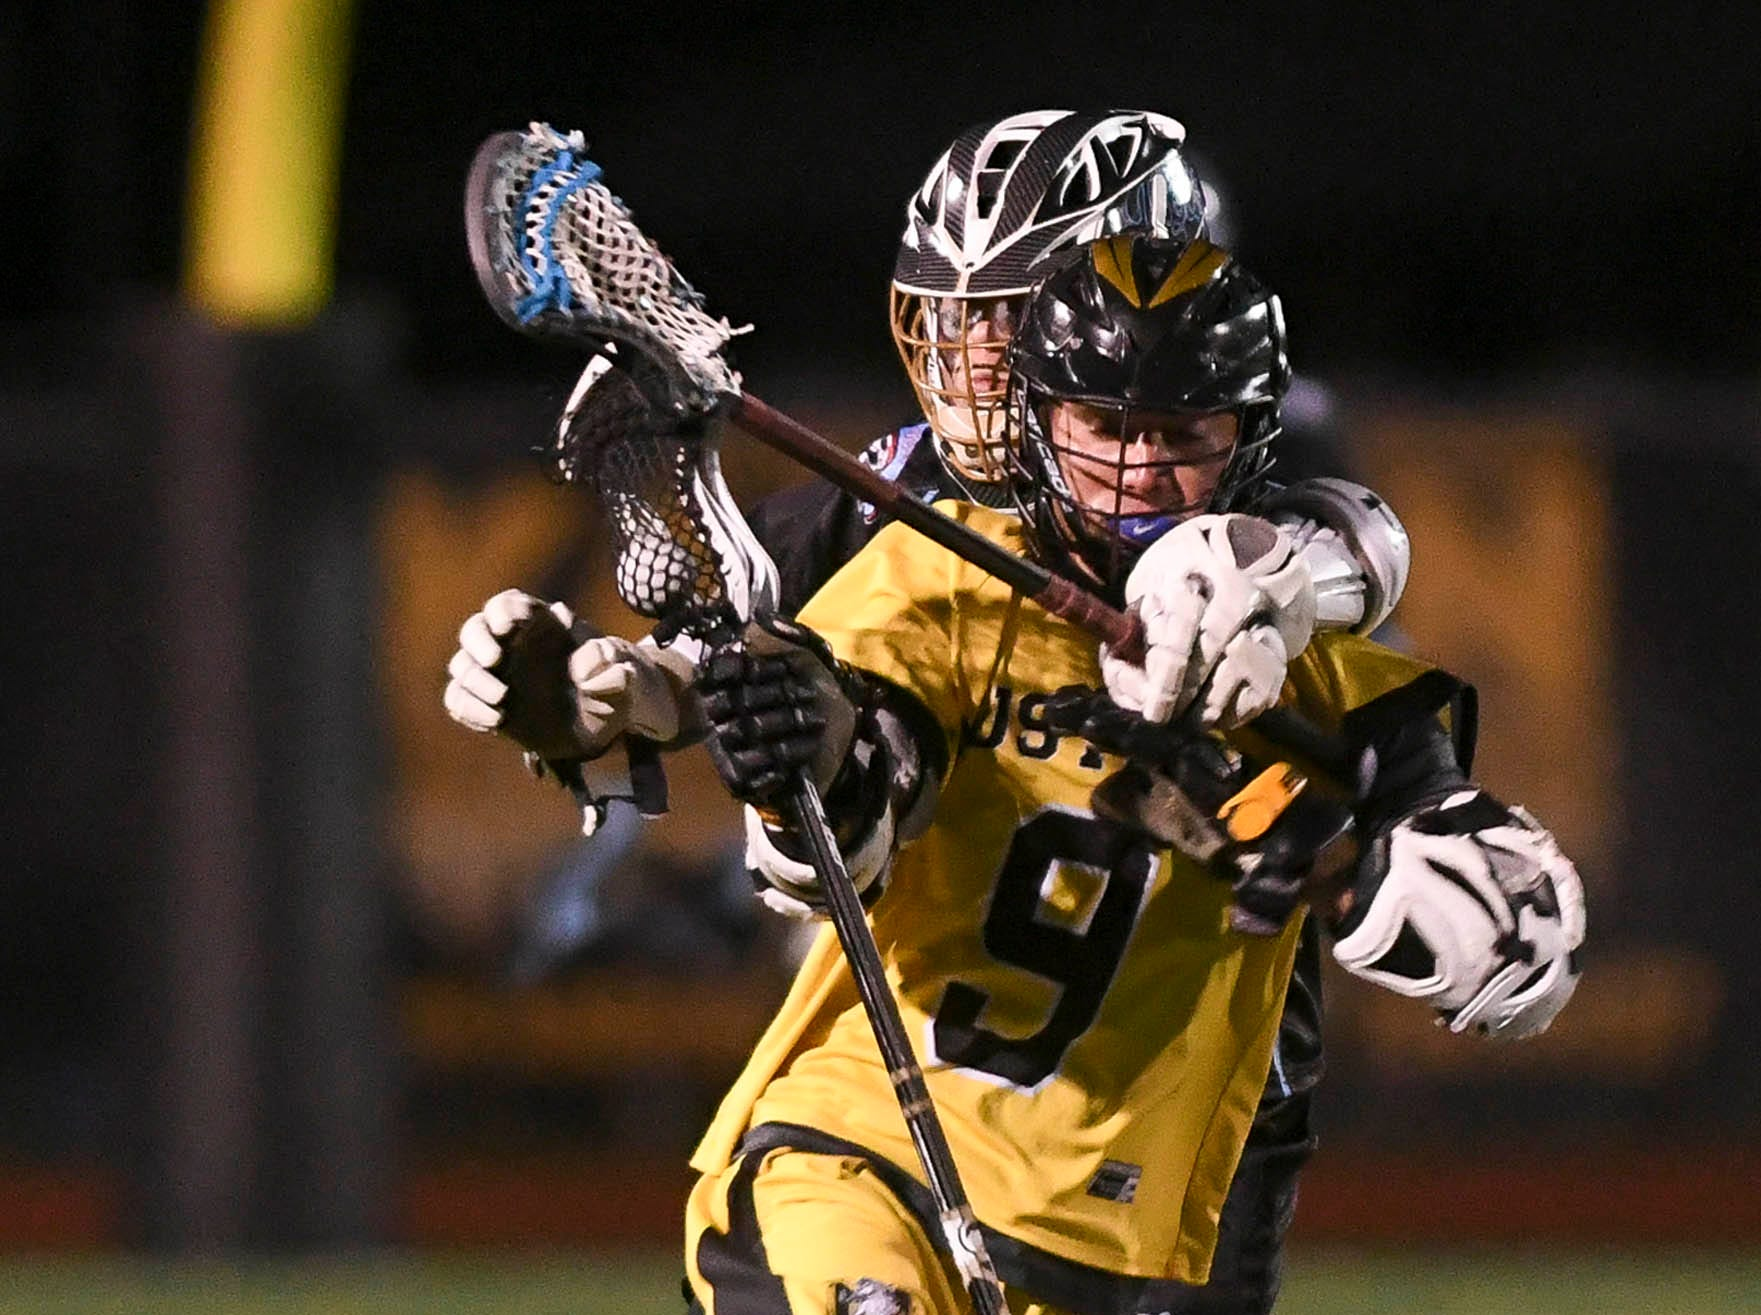 Nick Sidor of Merritt Island is chased by Hayden Knight of Rockledge during Wednesday's game.